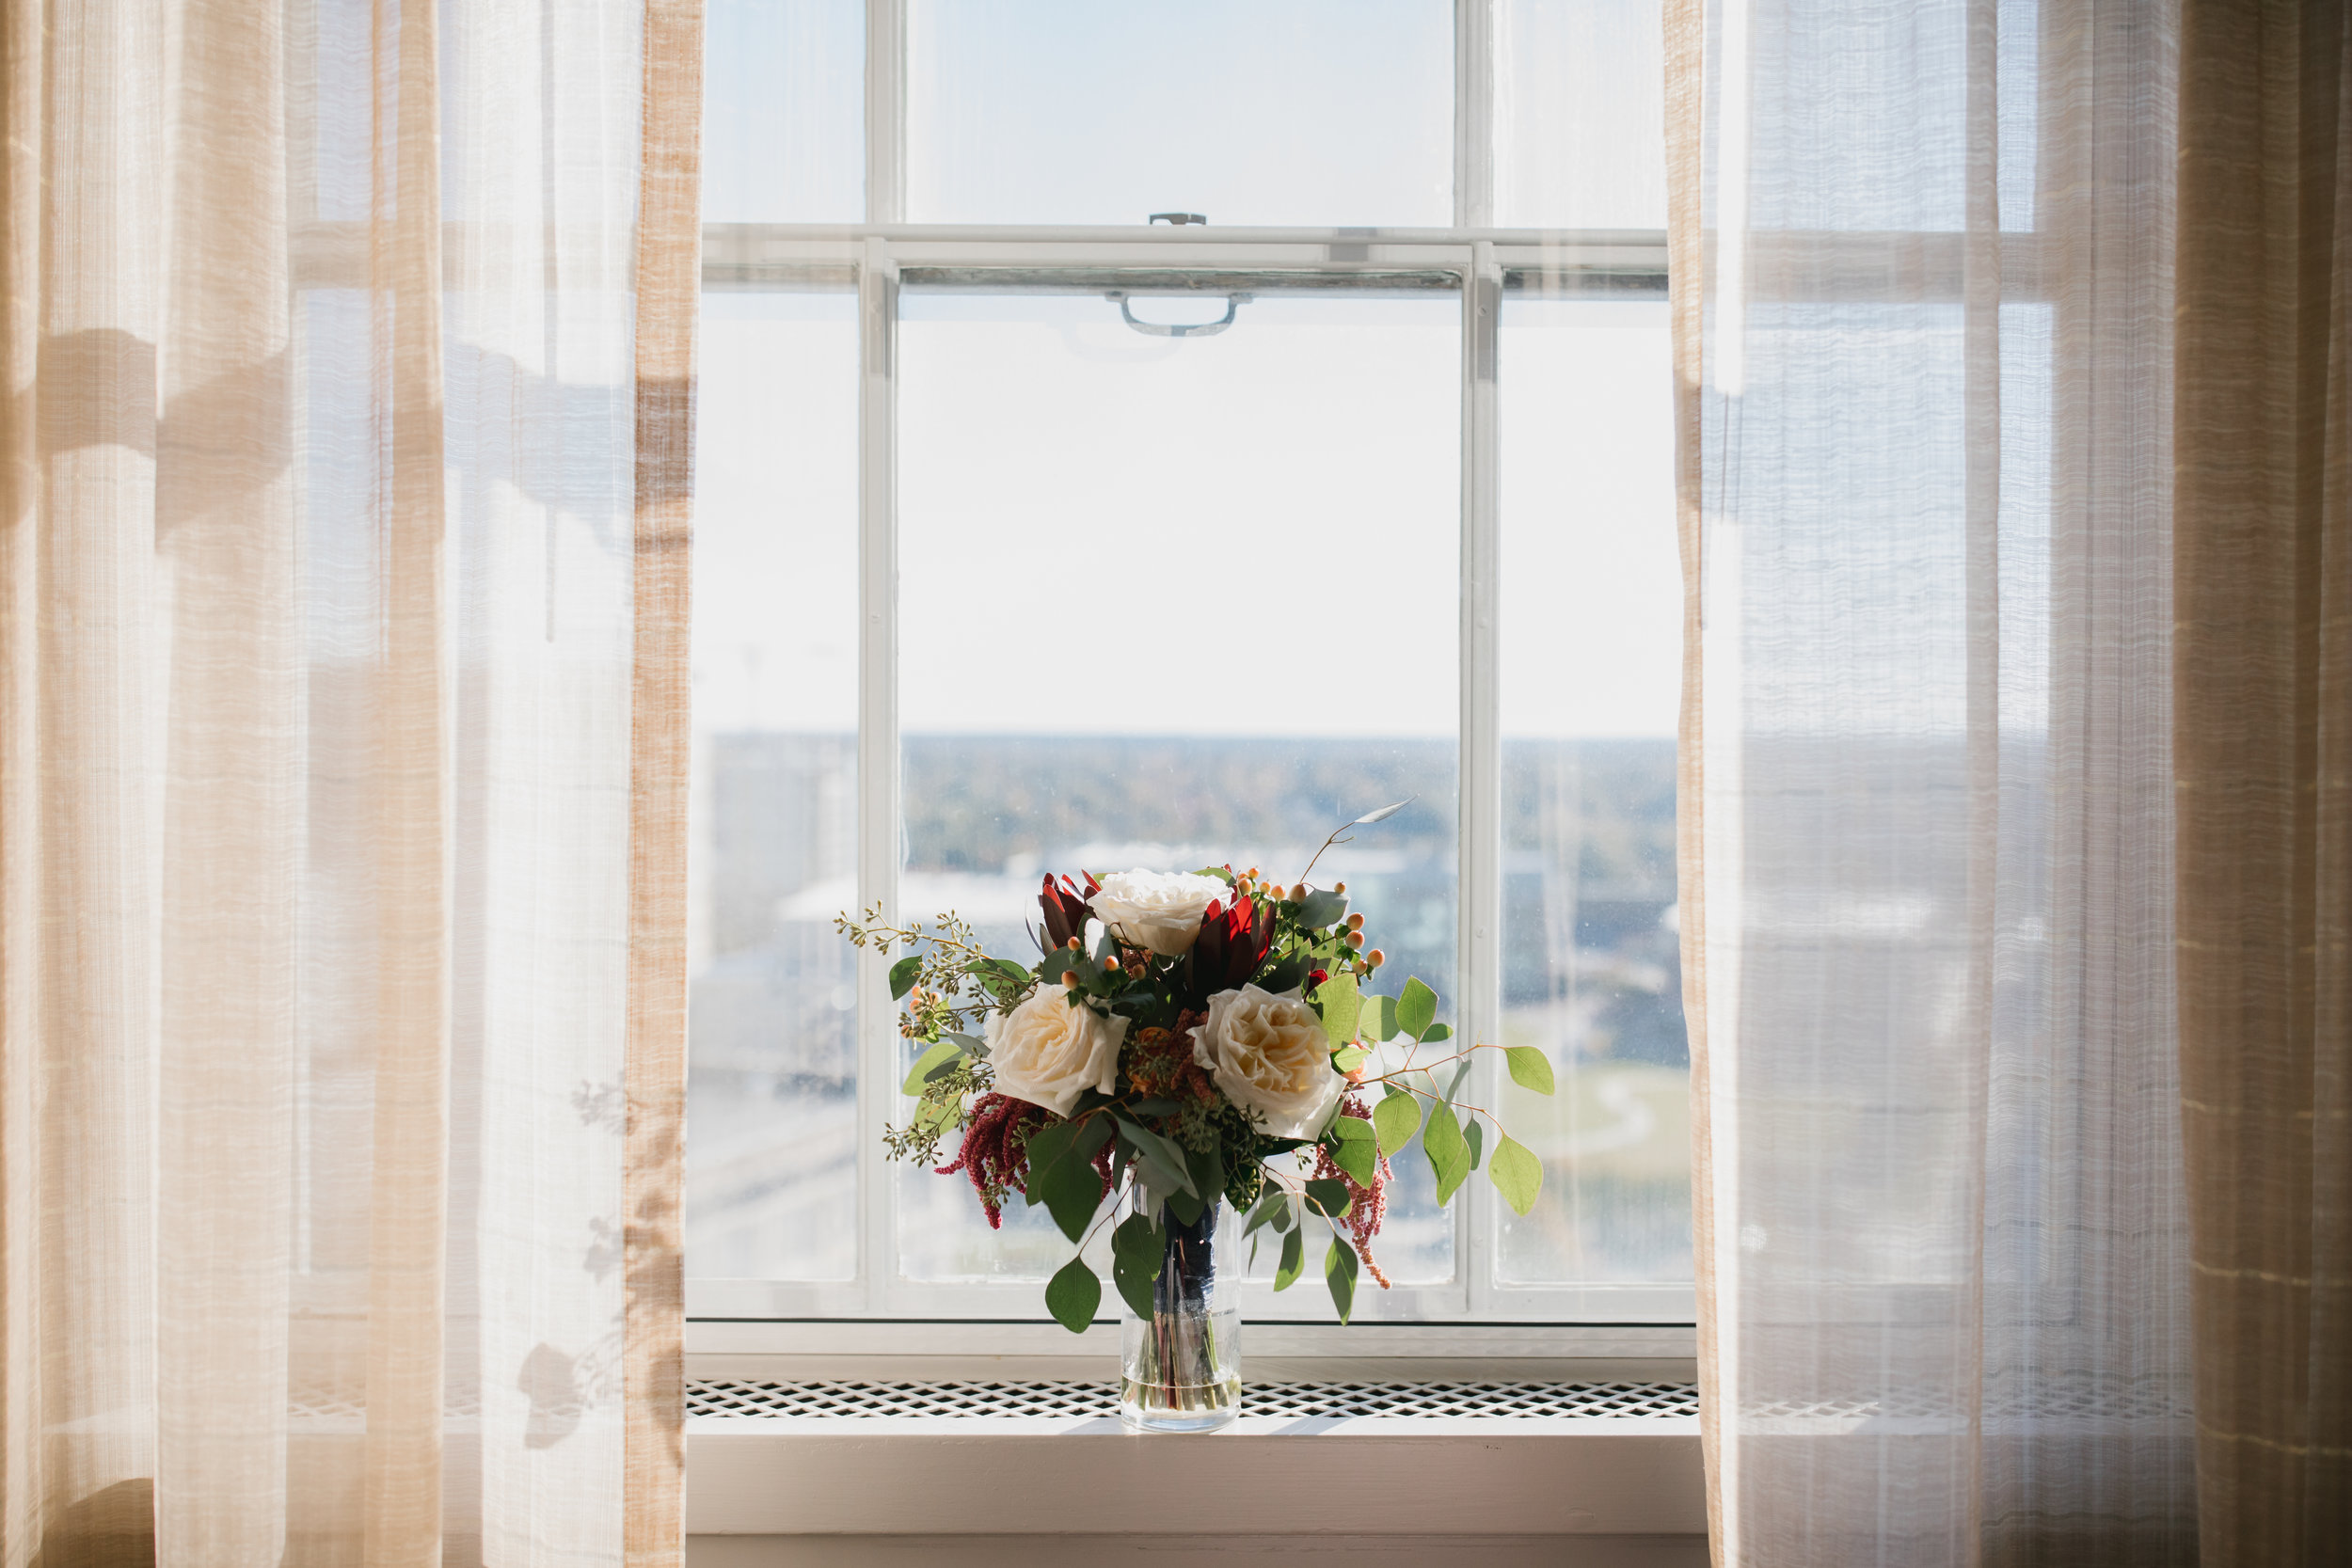 Kate + Matt's wedding at 21c Museum Hotel in Durham | wedding + portrait photographer in Durahm, NC | Merritt Chesson Photography